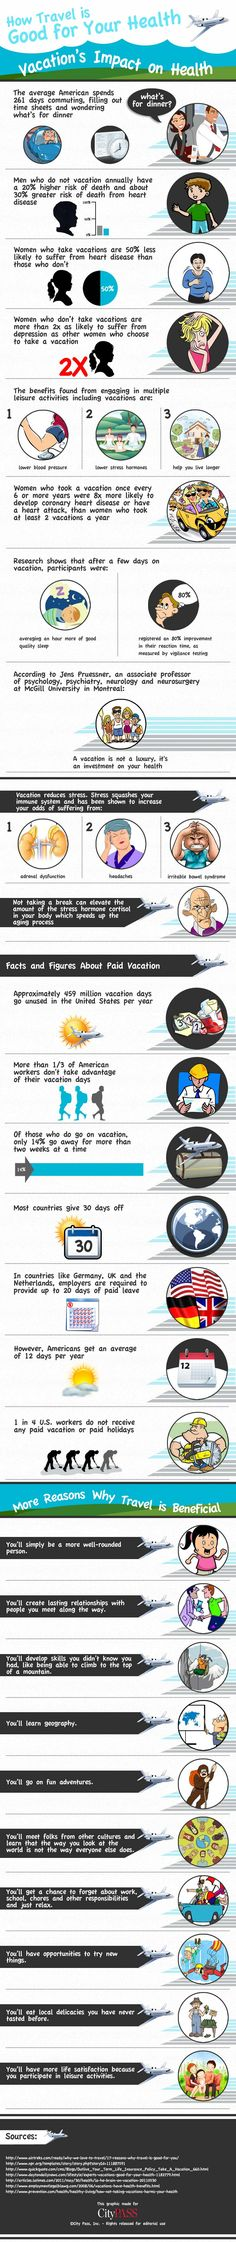 How Travel Is Good For Your Health [INFOGRAPHIC]